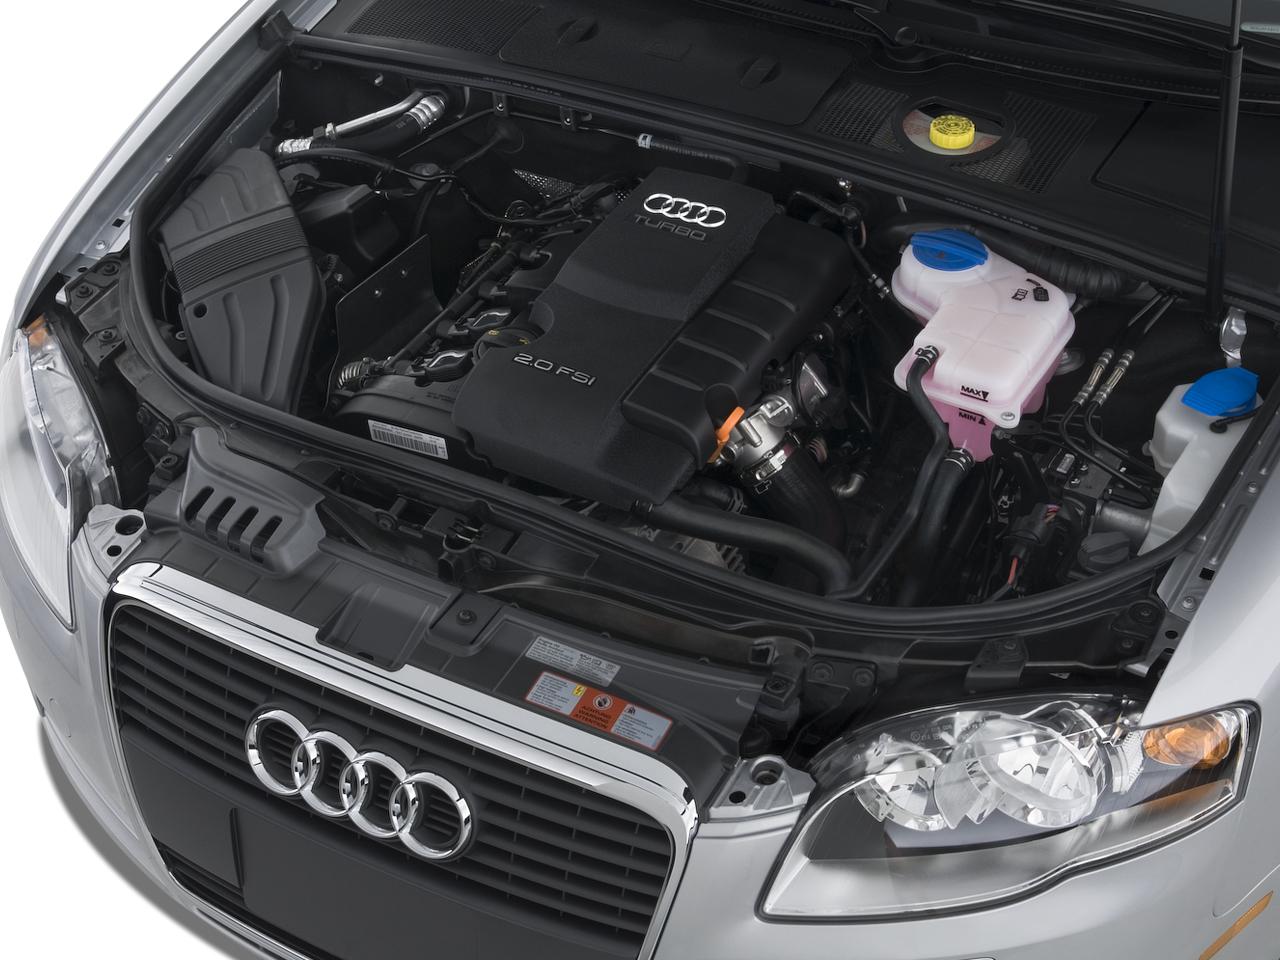 2009 audi a4 2.0 t cabriolet quattro tiptronic engine 2009 audi a4 latest news, features and auto show coverage audi a4 engine diagram at et-consult.org